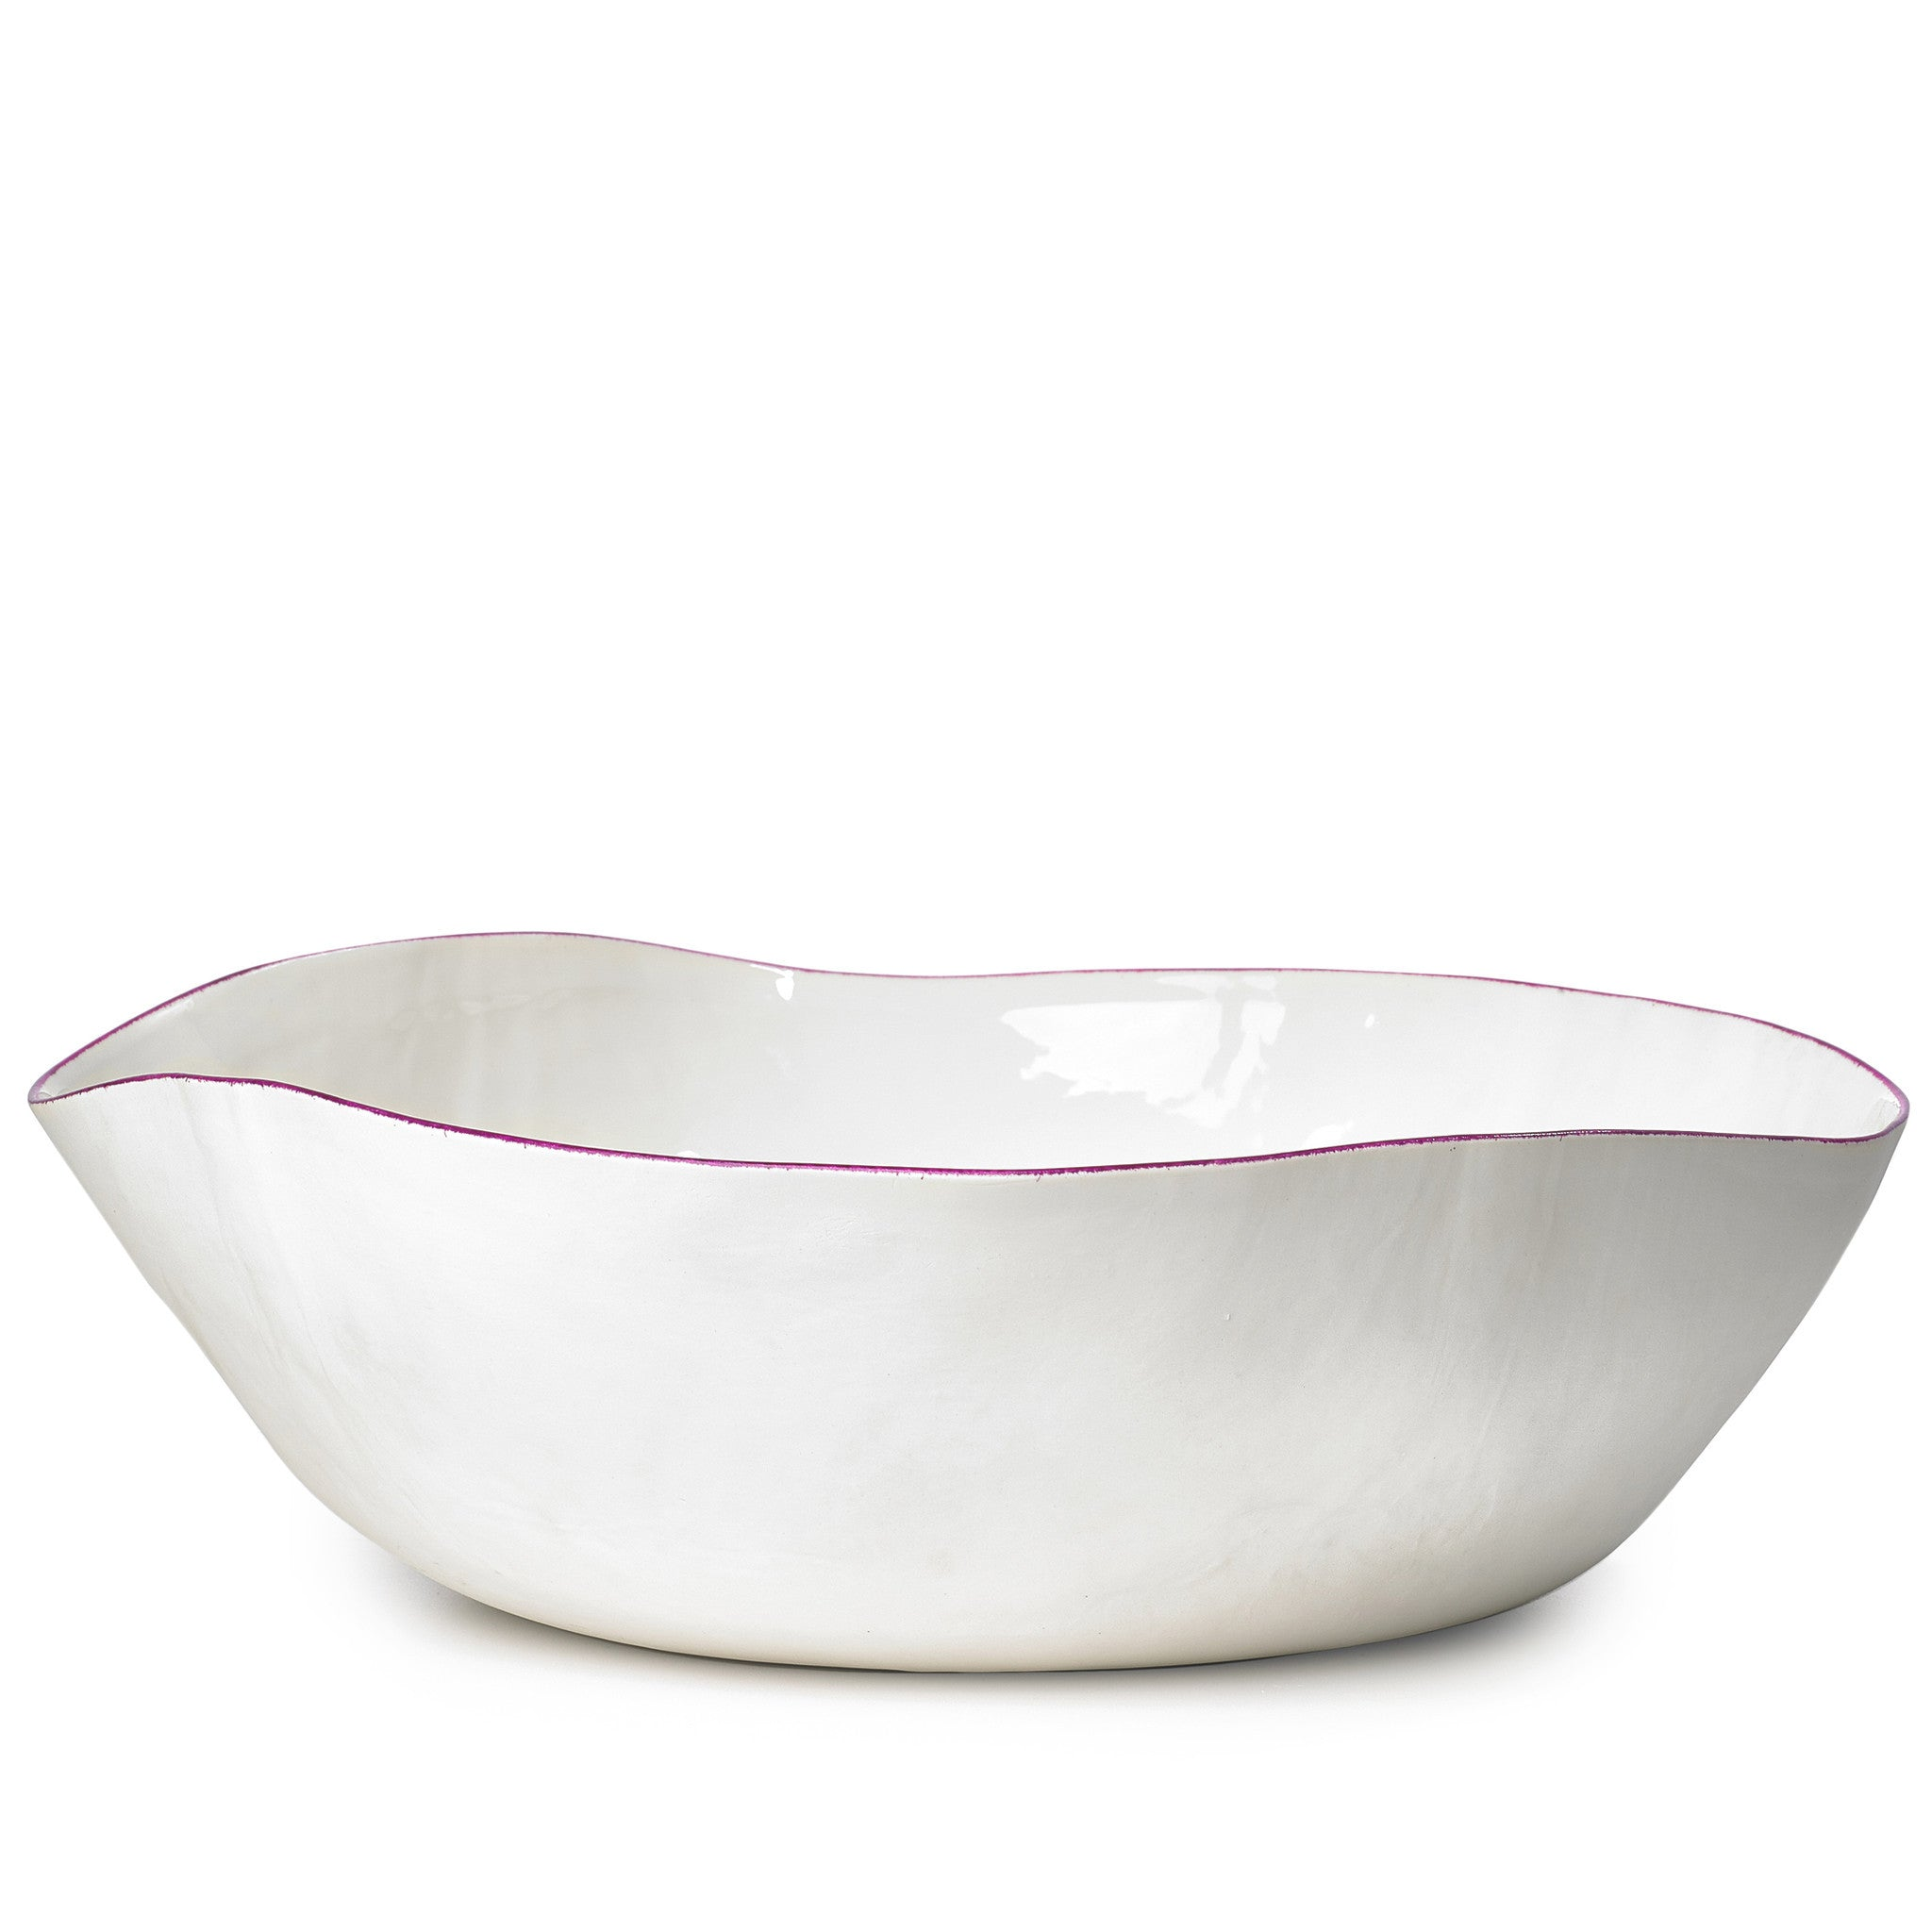 S&B Handmade 43cm Porcelain Extra Large Salad Bowl with Pink Rim